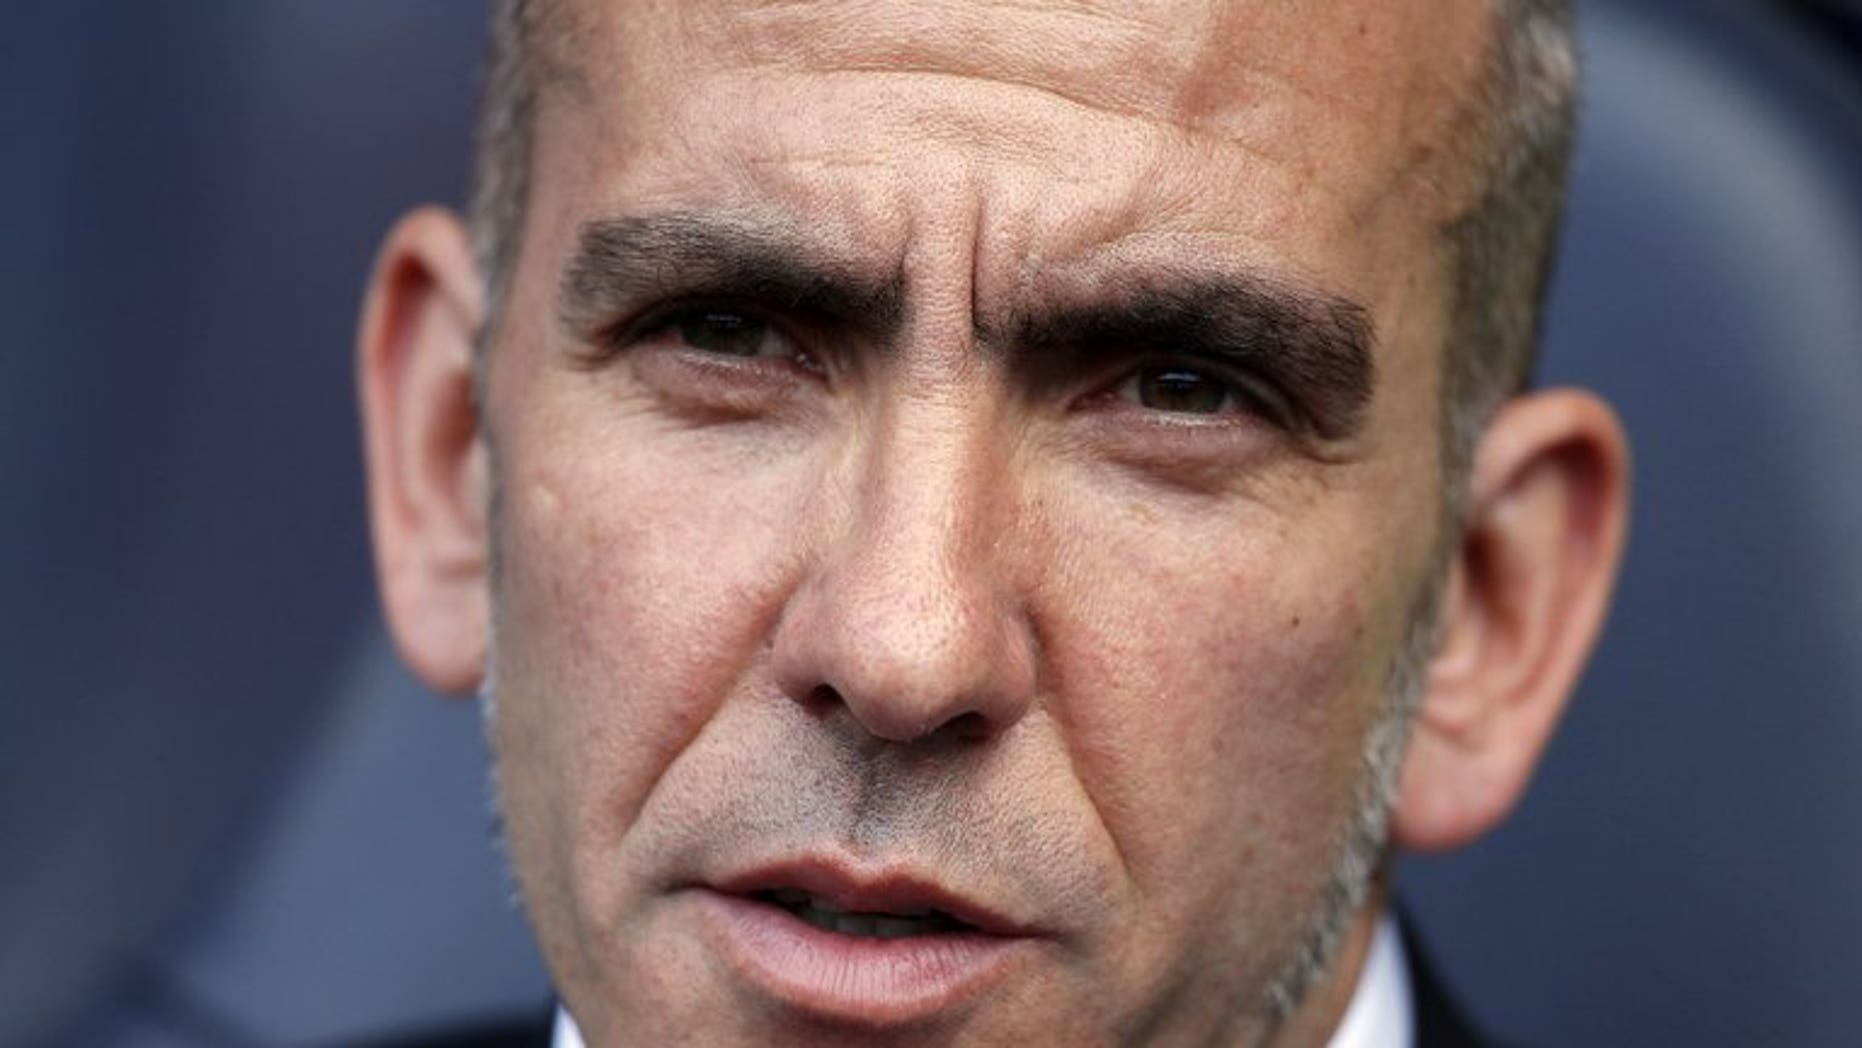 Sunderland's Italian manager Paolo Di Canio is seen at his team's match in London on May 19, 2013. Di Canio has joked he would have to cough up the cash to his players after threatening to fine them if they returned for pre-season overweight.